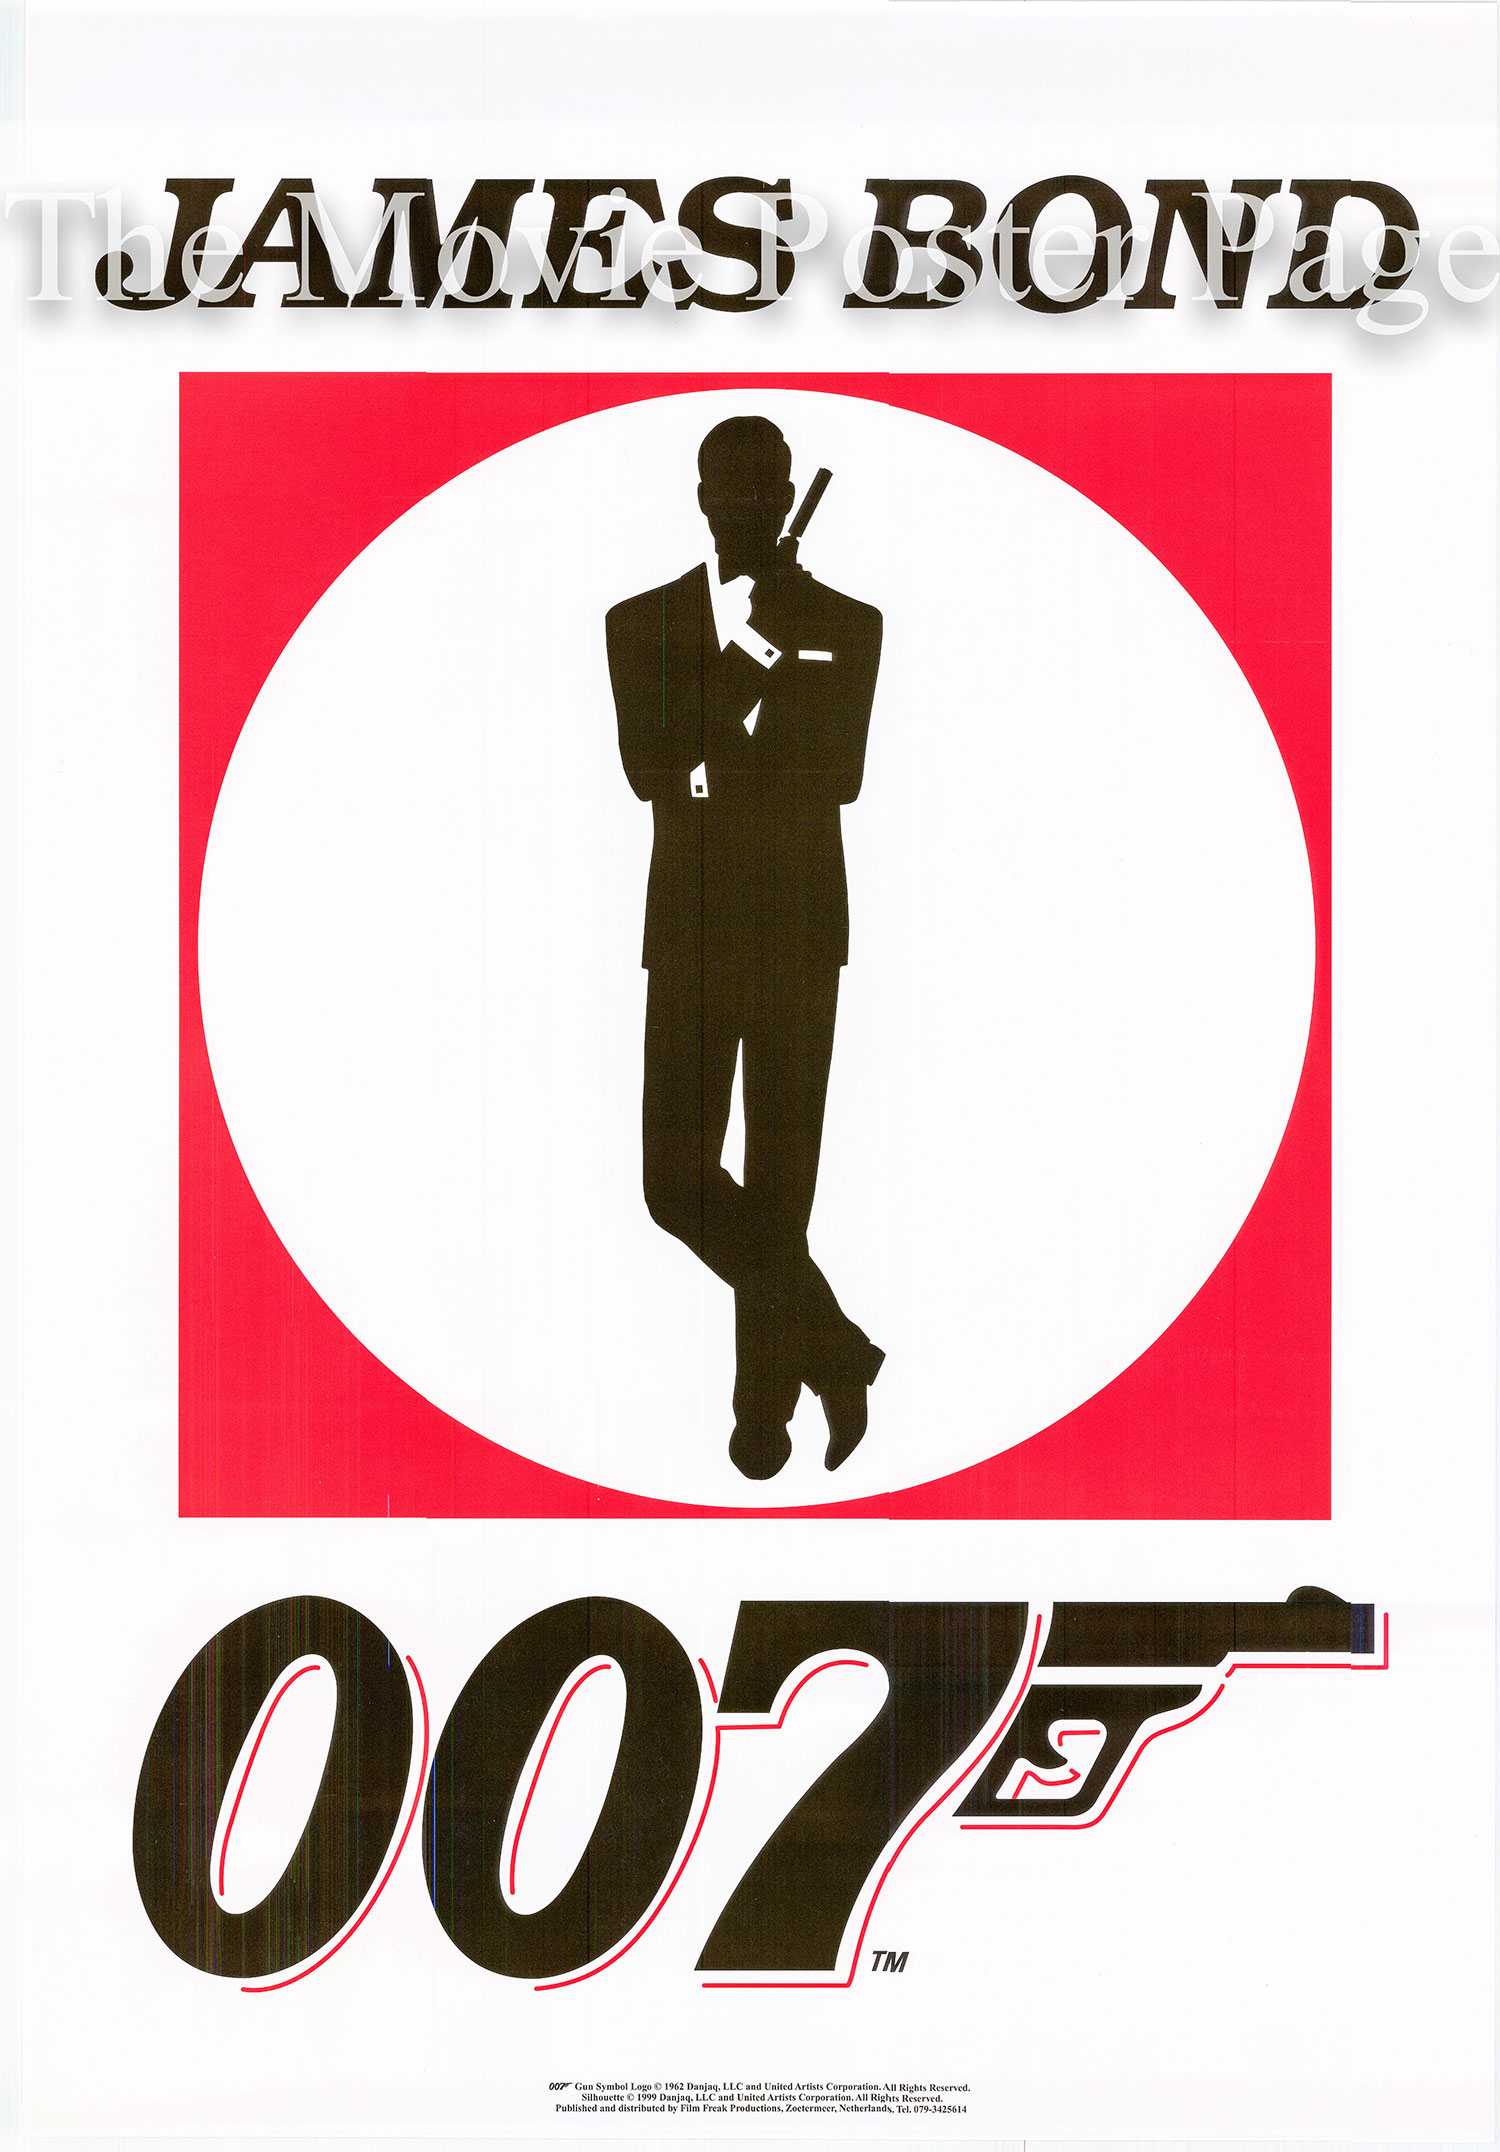 Pictured is a James Bond Logo poster.